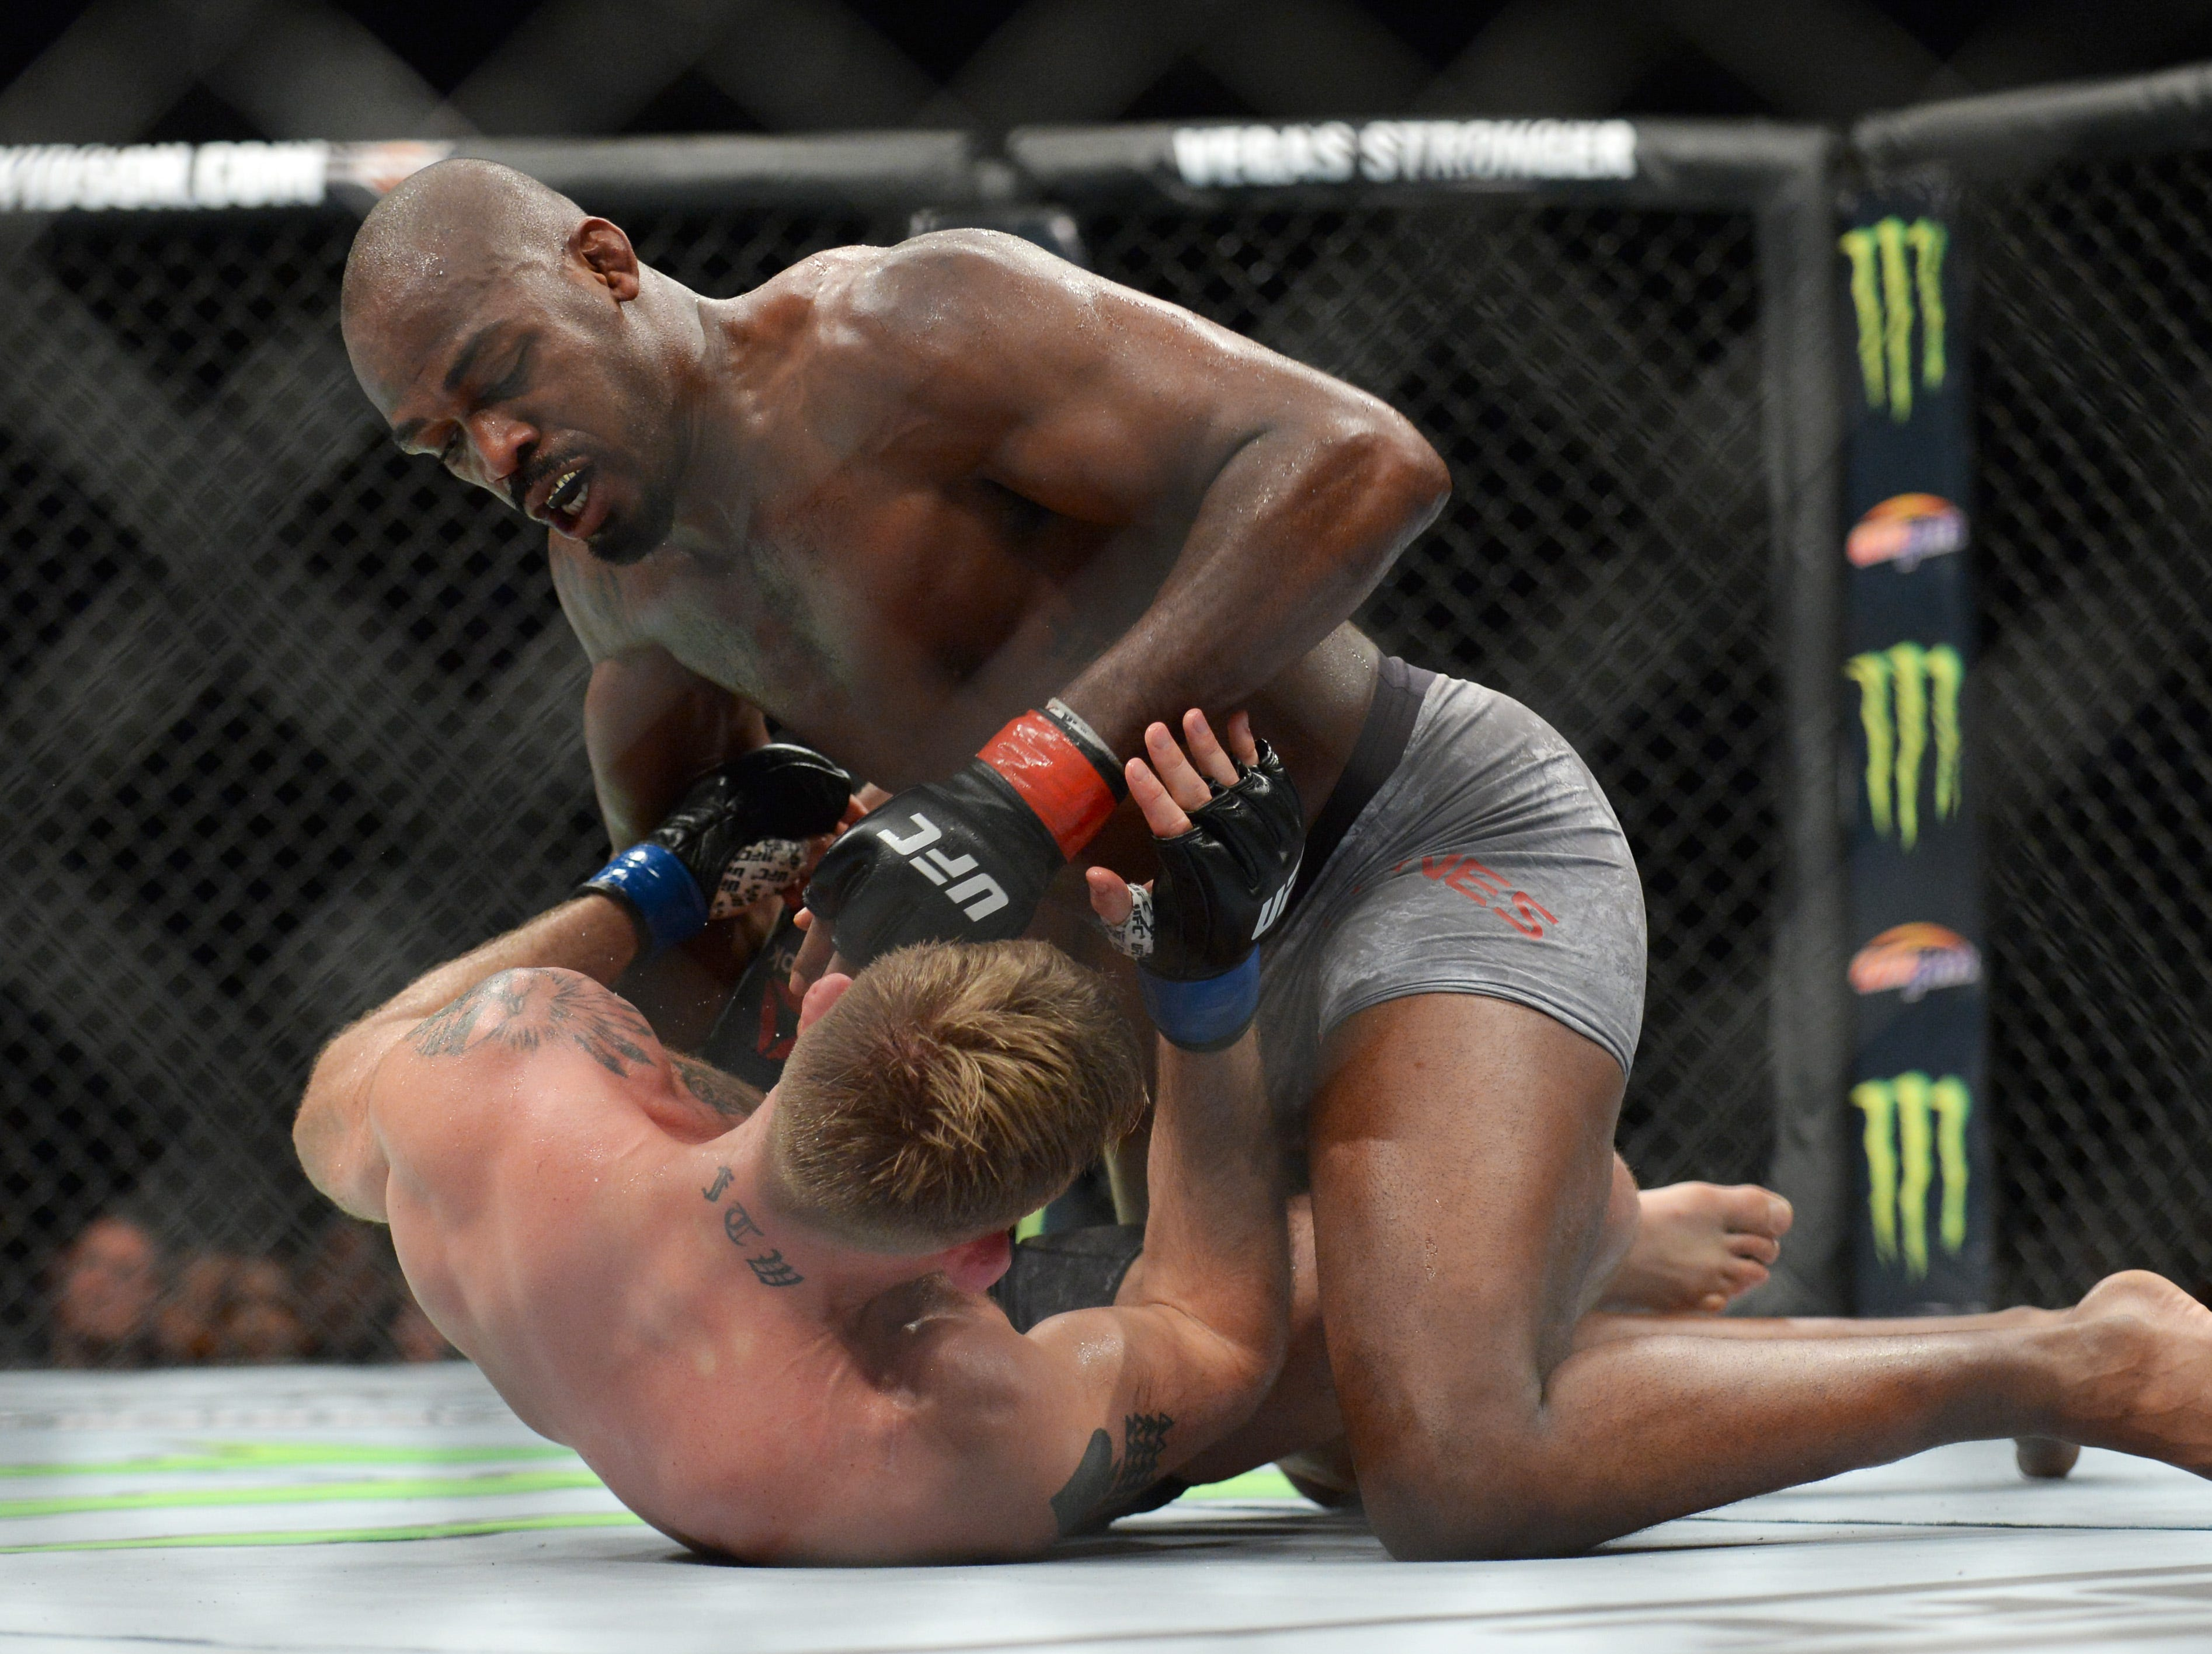 Dec 29, 2018; Los Angeles, CA, USA; Jon Jones (red gloves) fights Alexander Gustafsson (blue gloves) during UFC 232 at The Forum. Mandatory Credit: Gary A. Vasquez-USA TODAY Sports